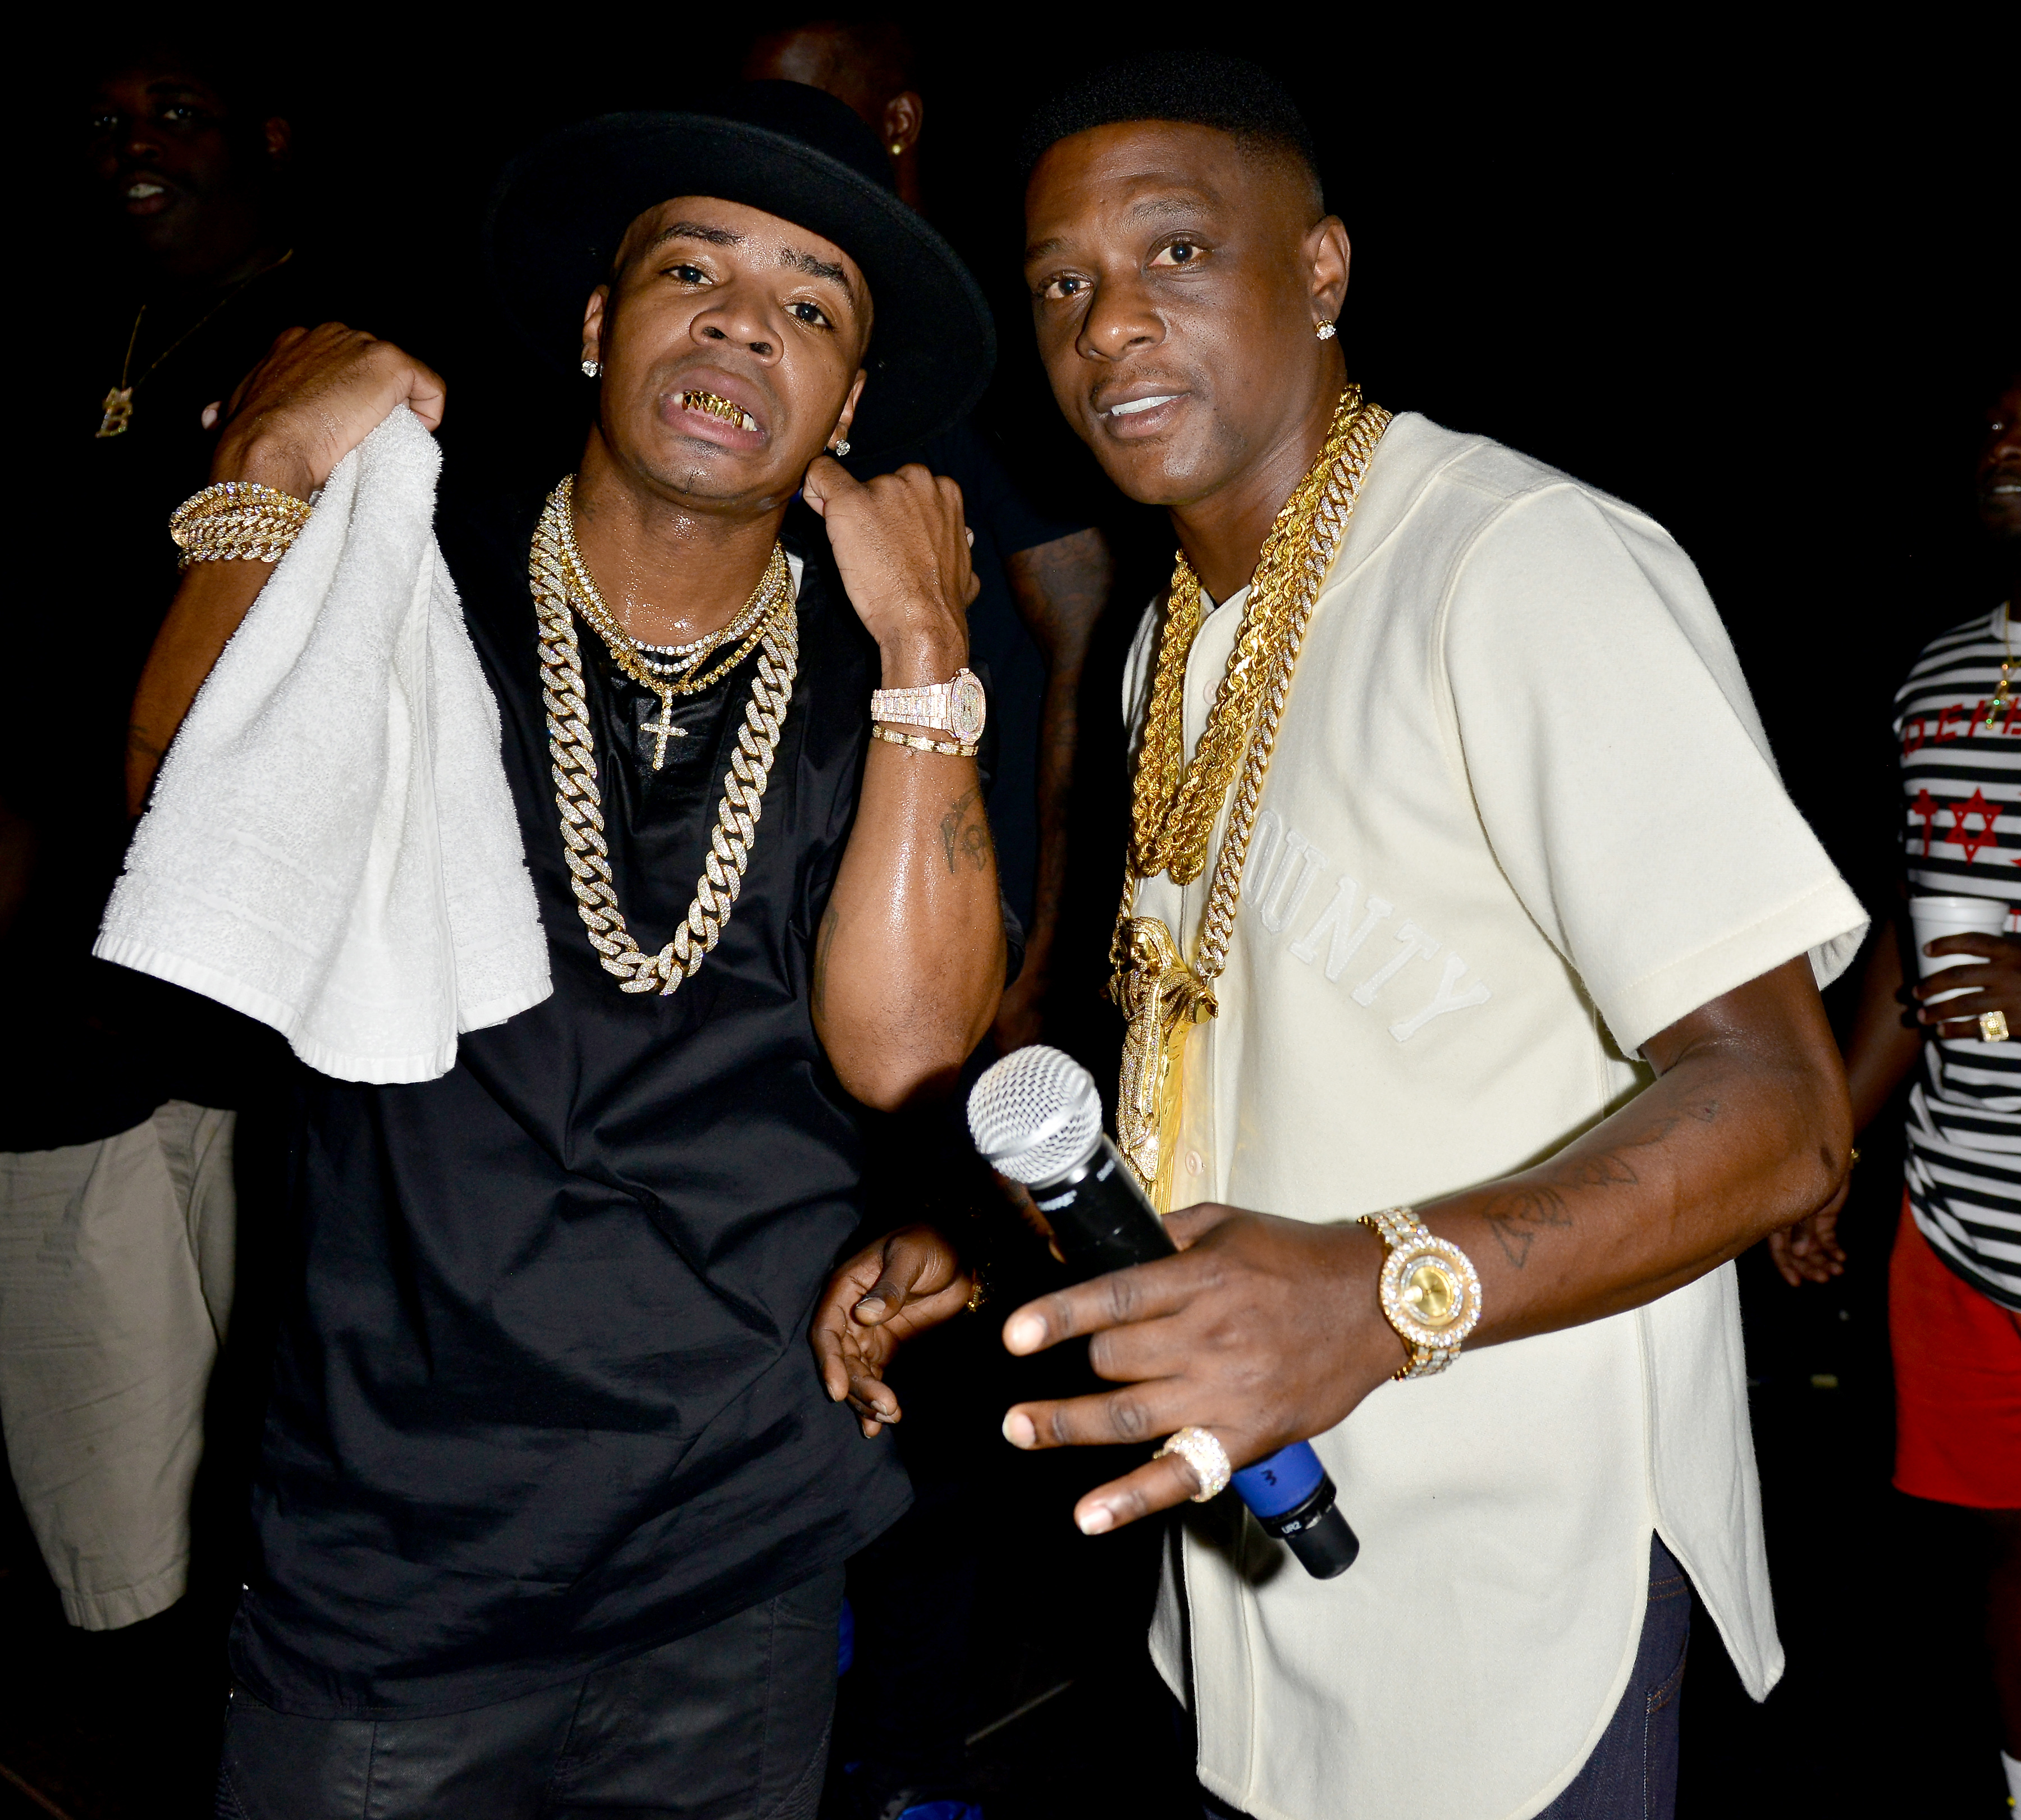 Lil' Boosie and Plies Kings backstage during the Kings of the Streets Tour at the James L. Knight Center